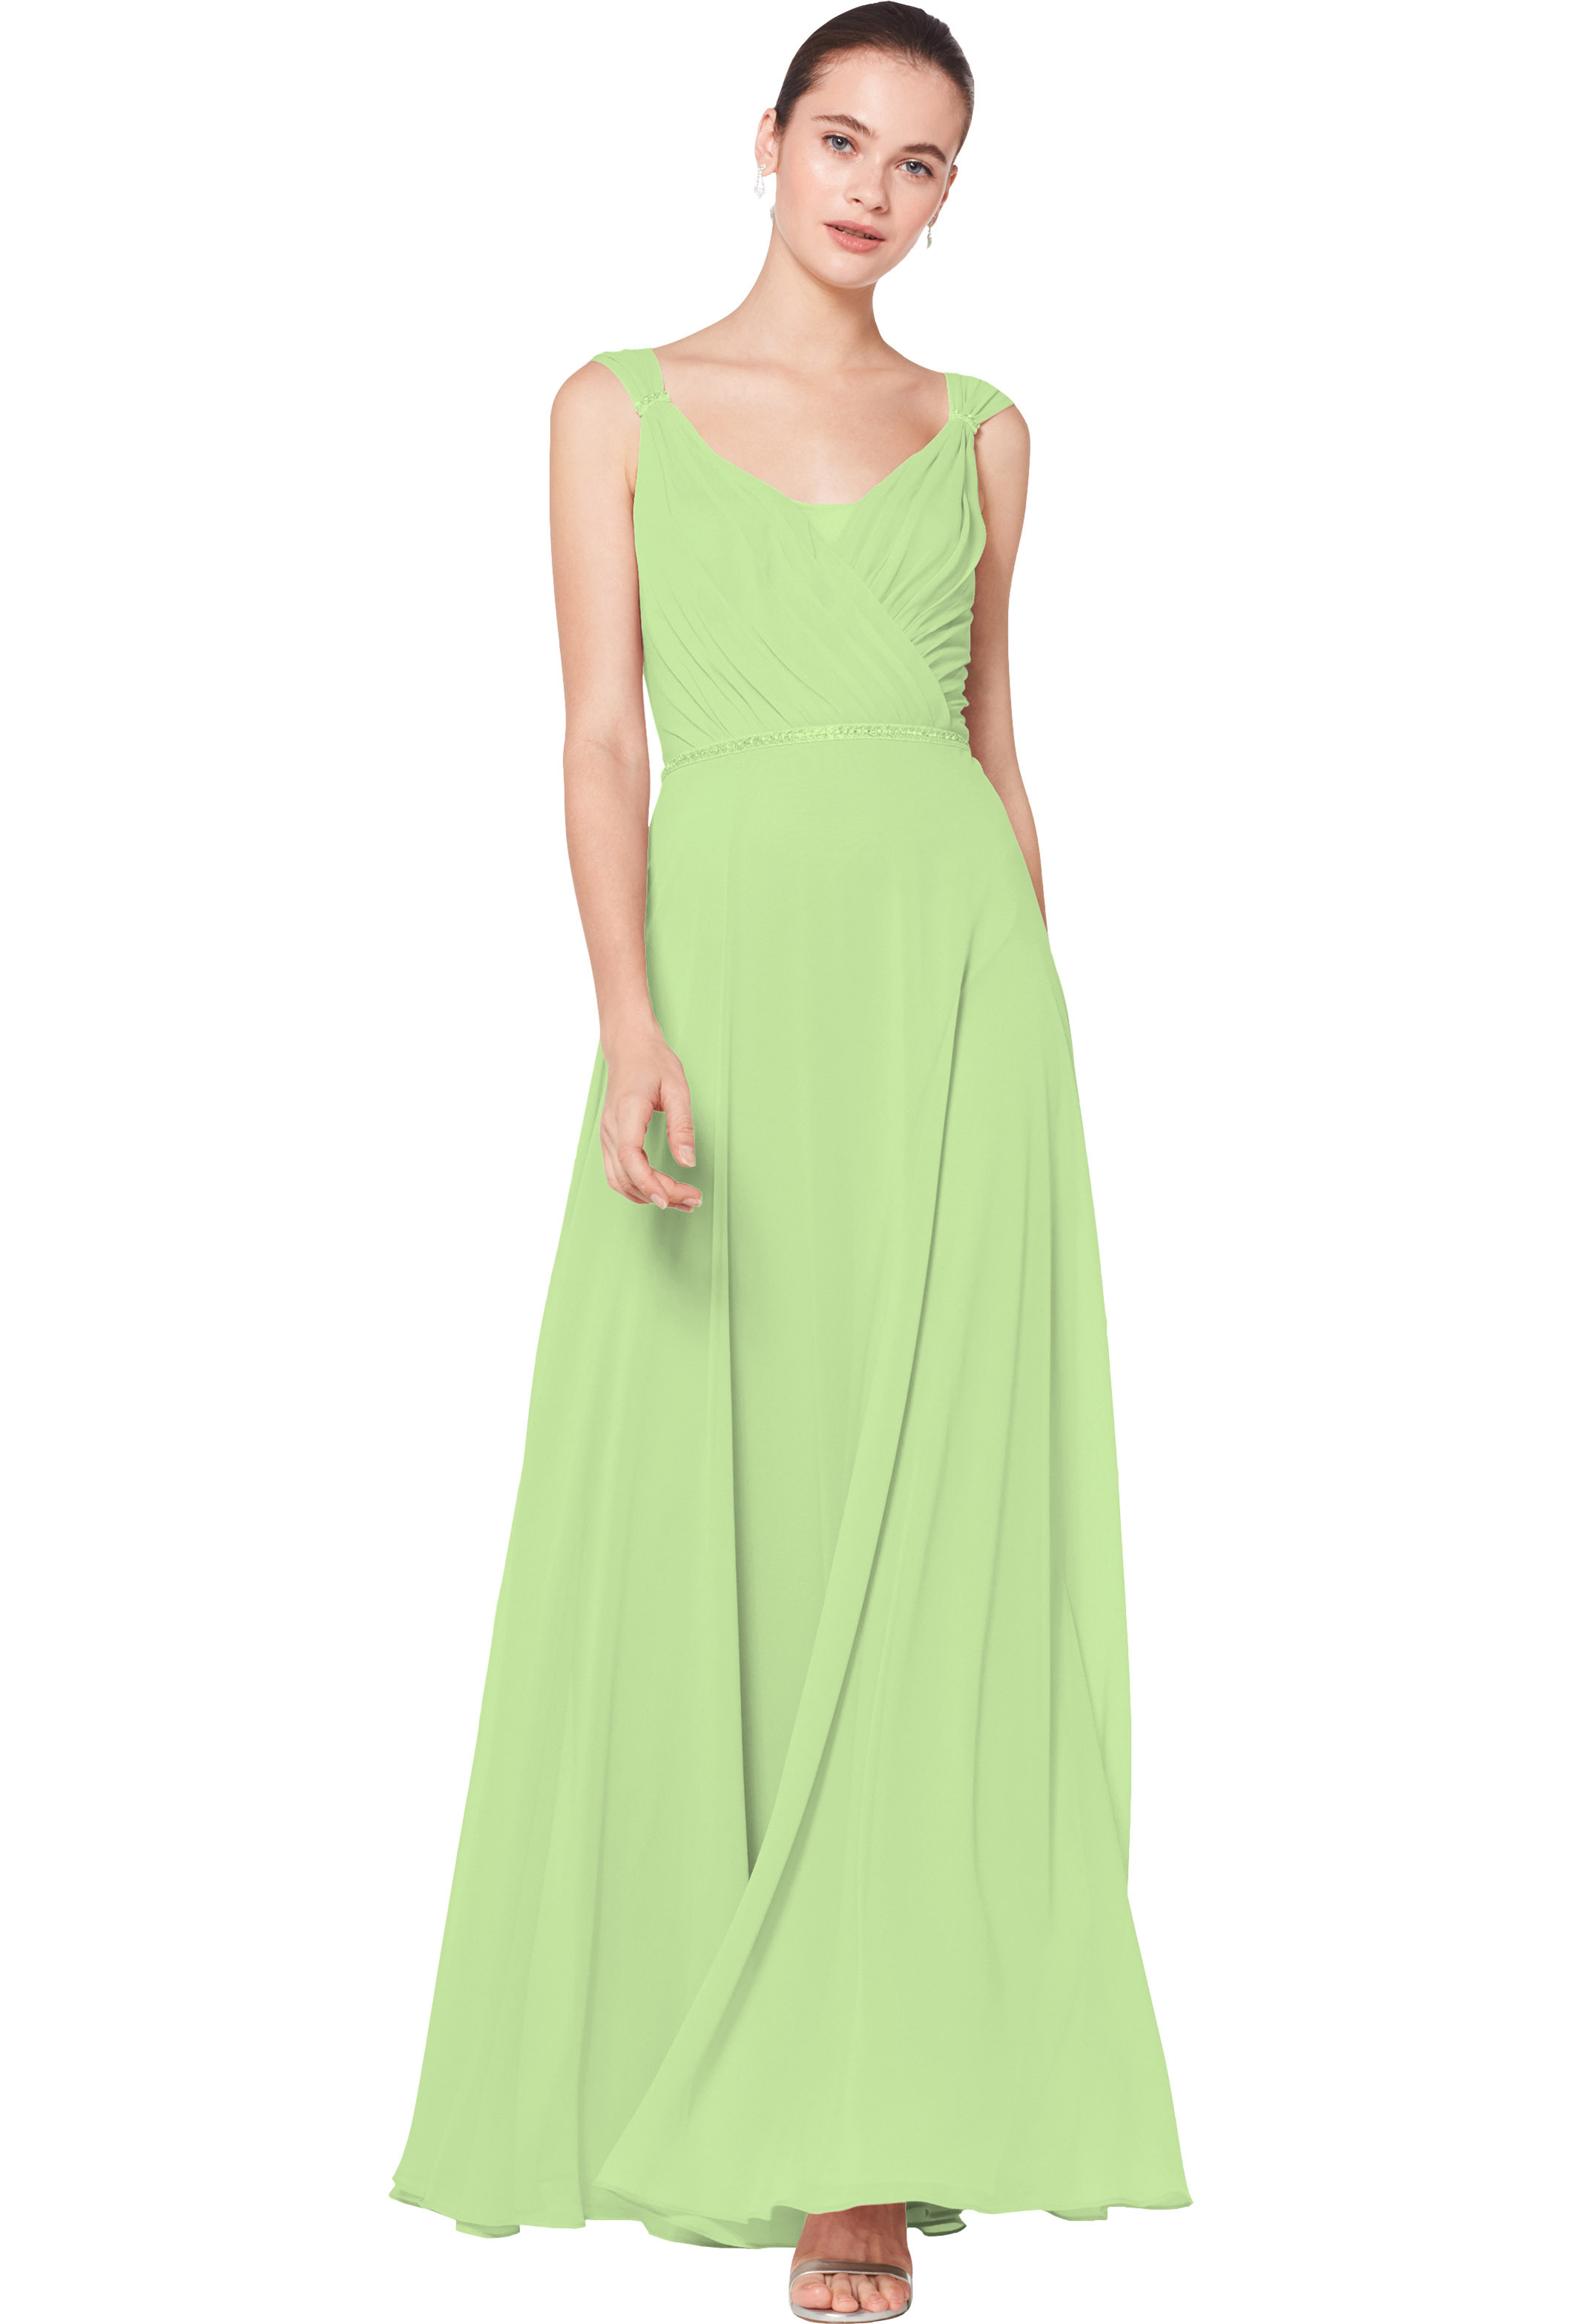 Bill Levkoff PISTACHIO Chiffon Sleeveless A-line gown, $230.00 Front